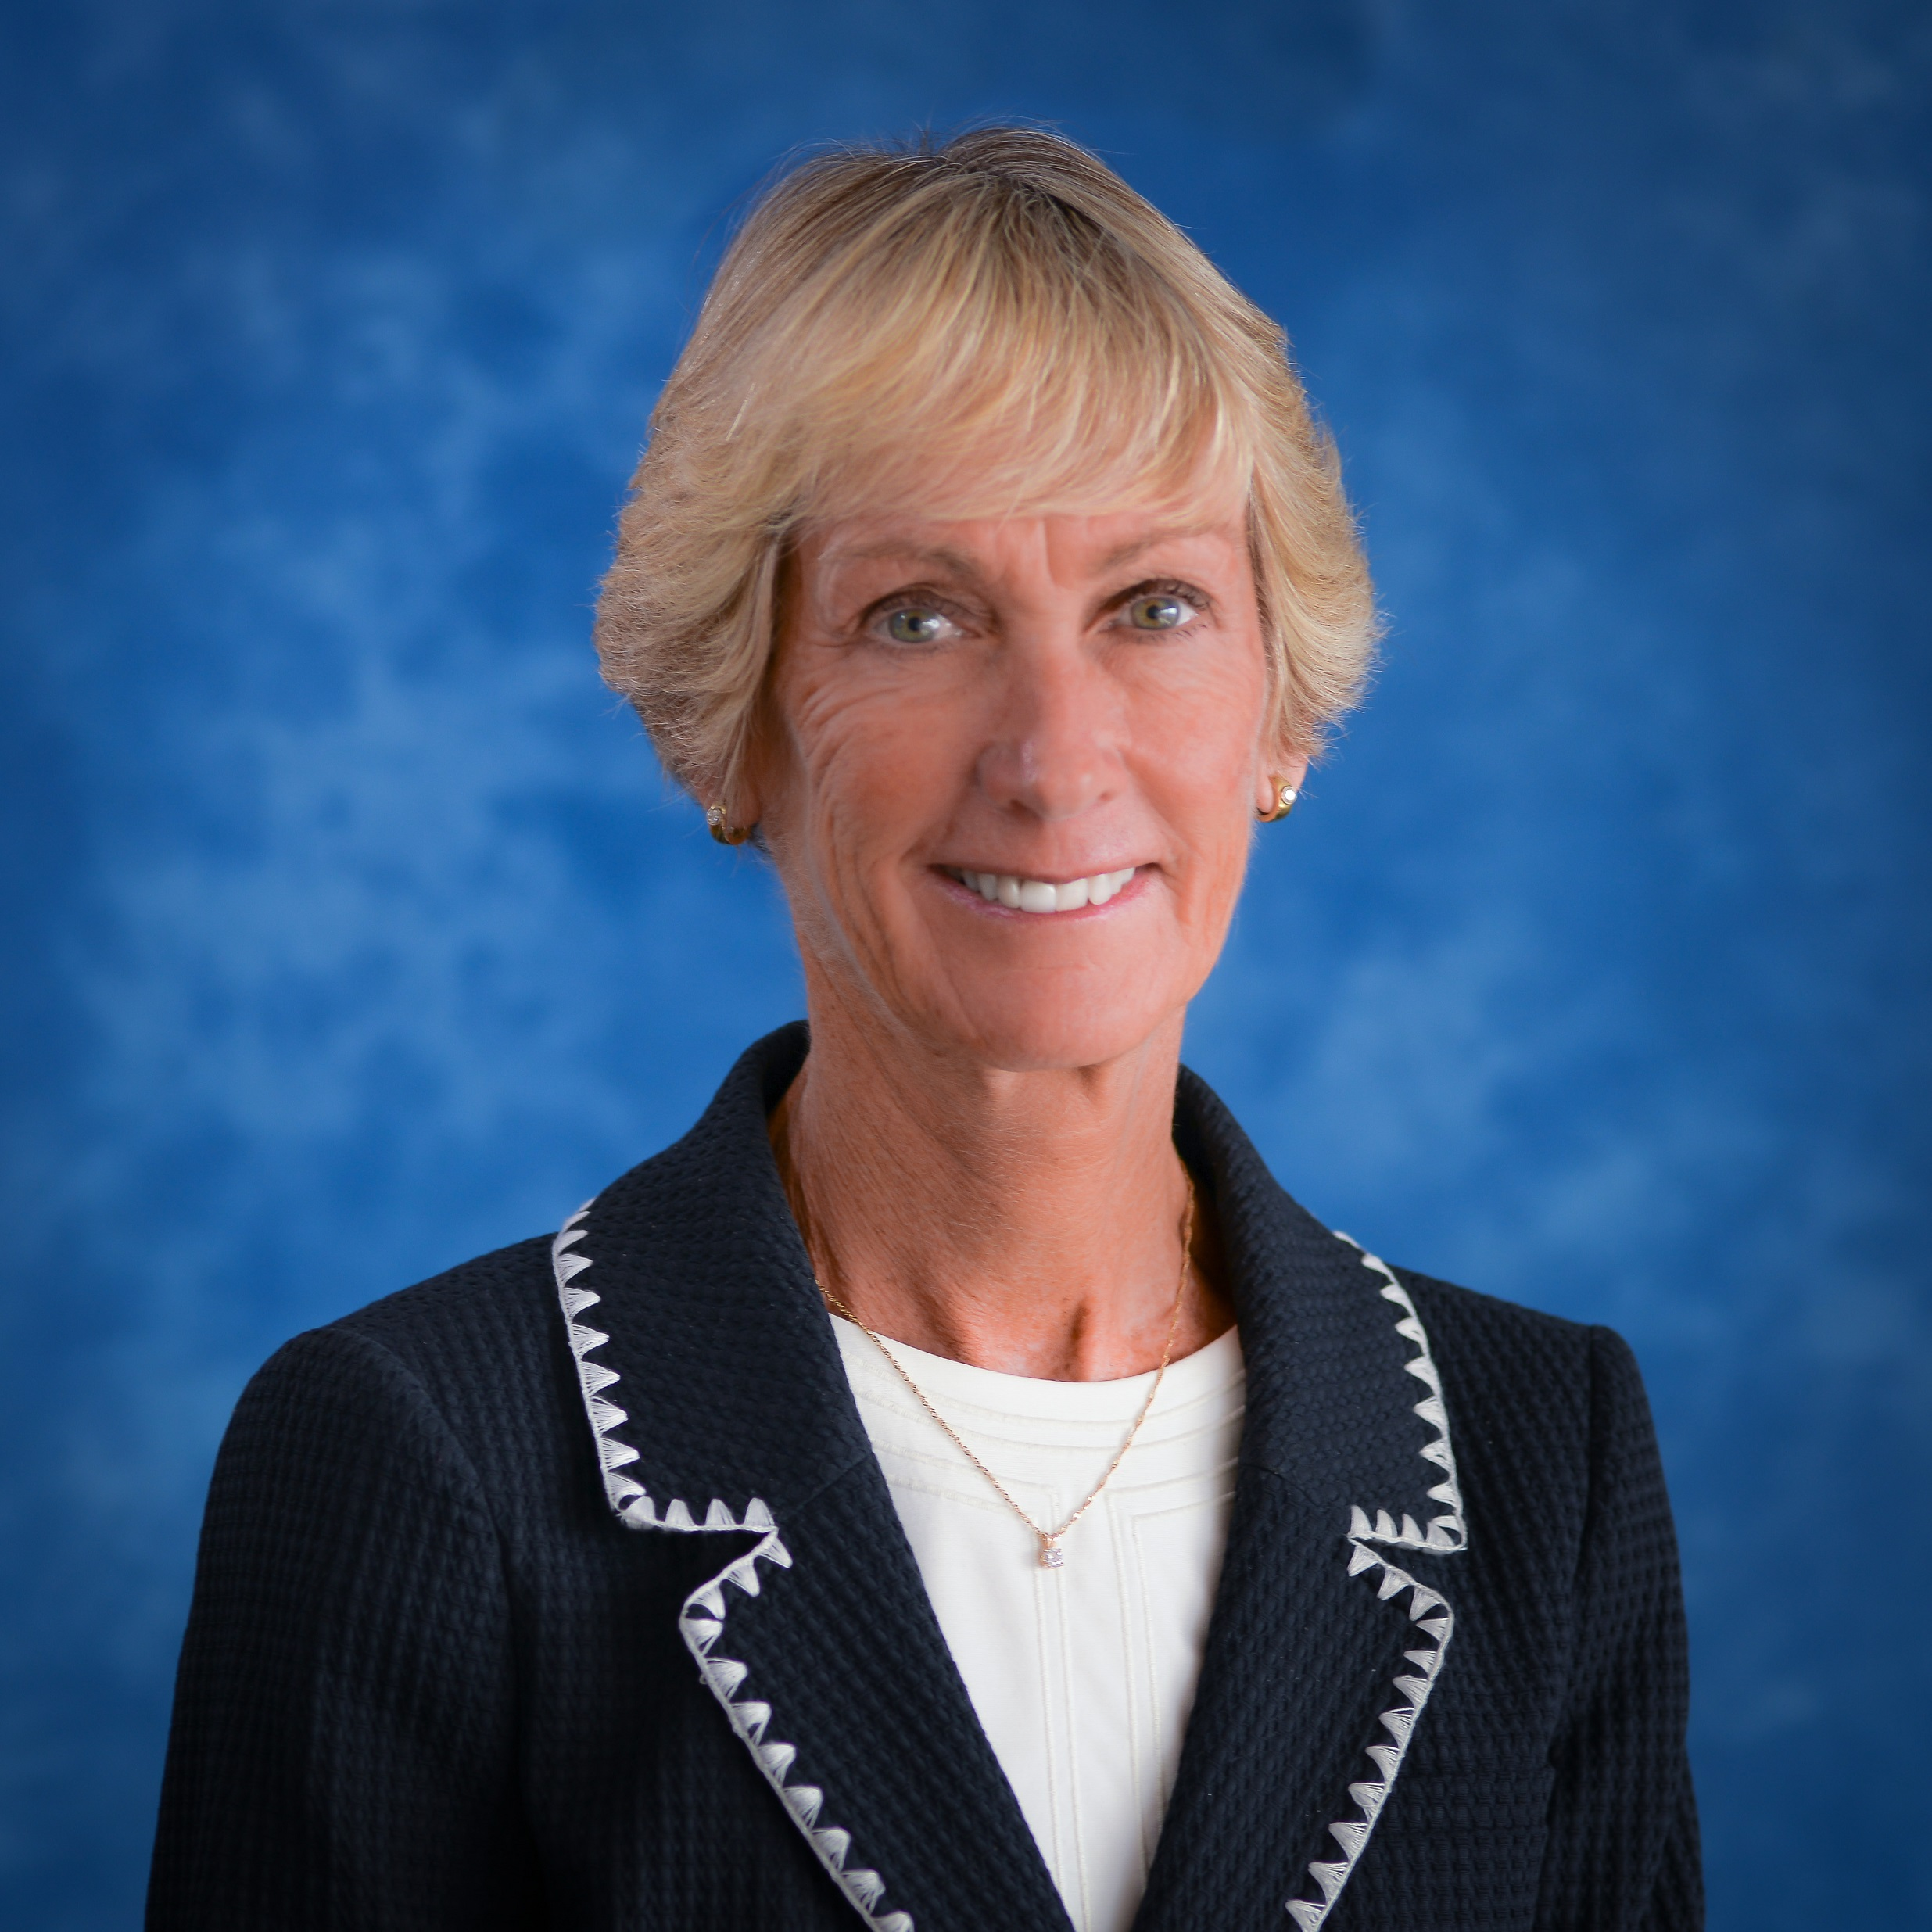 Patty Jobbitt Named Chief Executive Officer of Rehabilitation Institute of Michigan